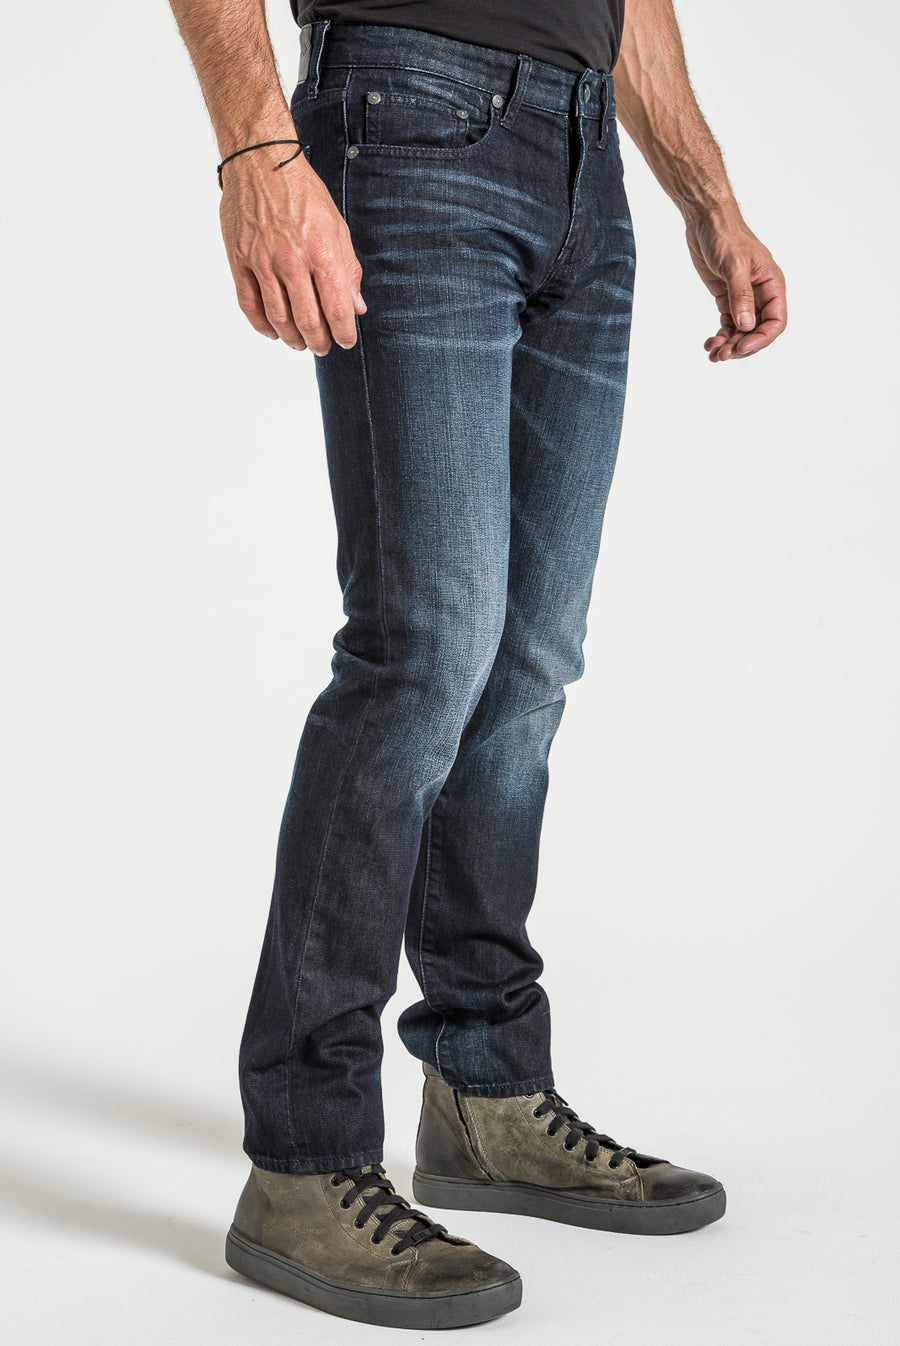 BARFLY SLIM IN BRITAIN DISTRESSED DENIM